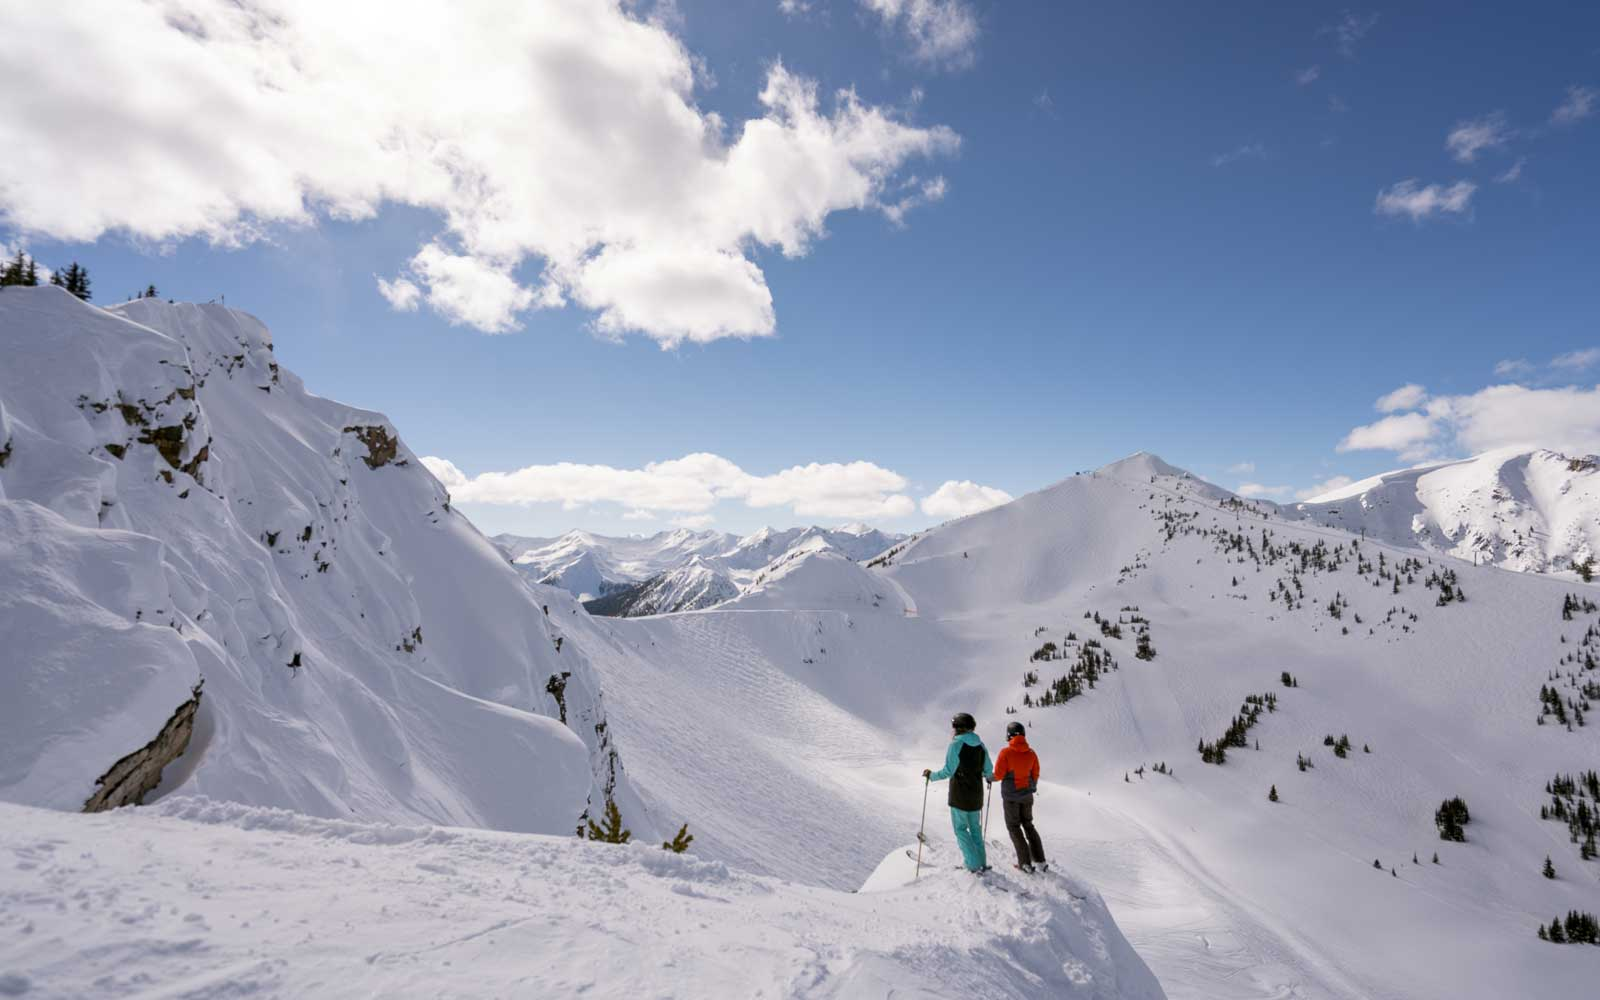 The Best Small-town Ski Resorts in British Columbia